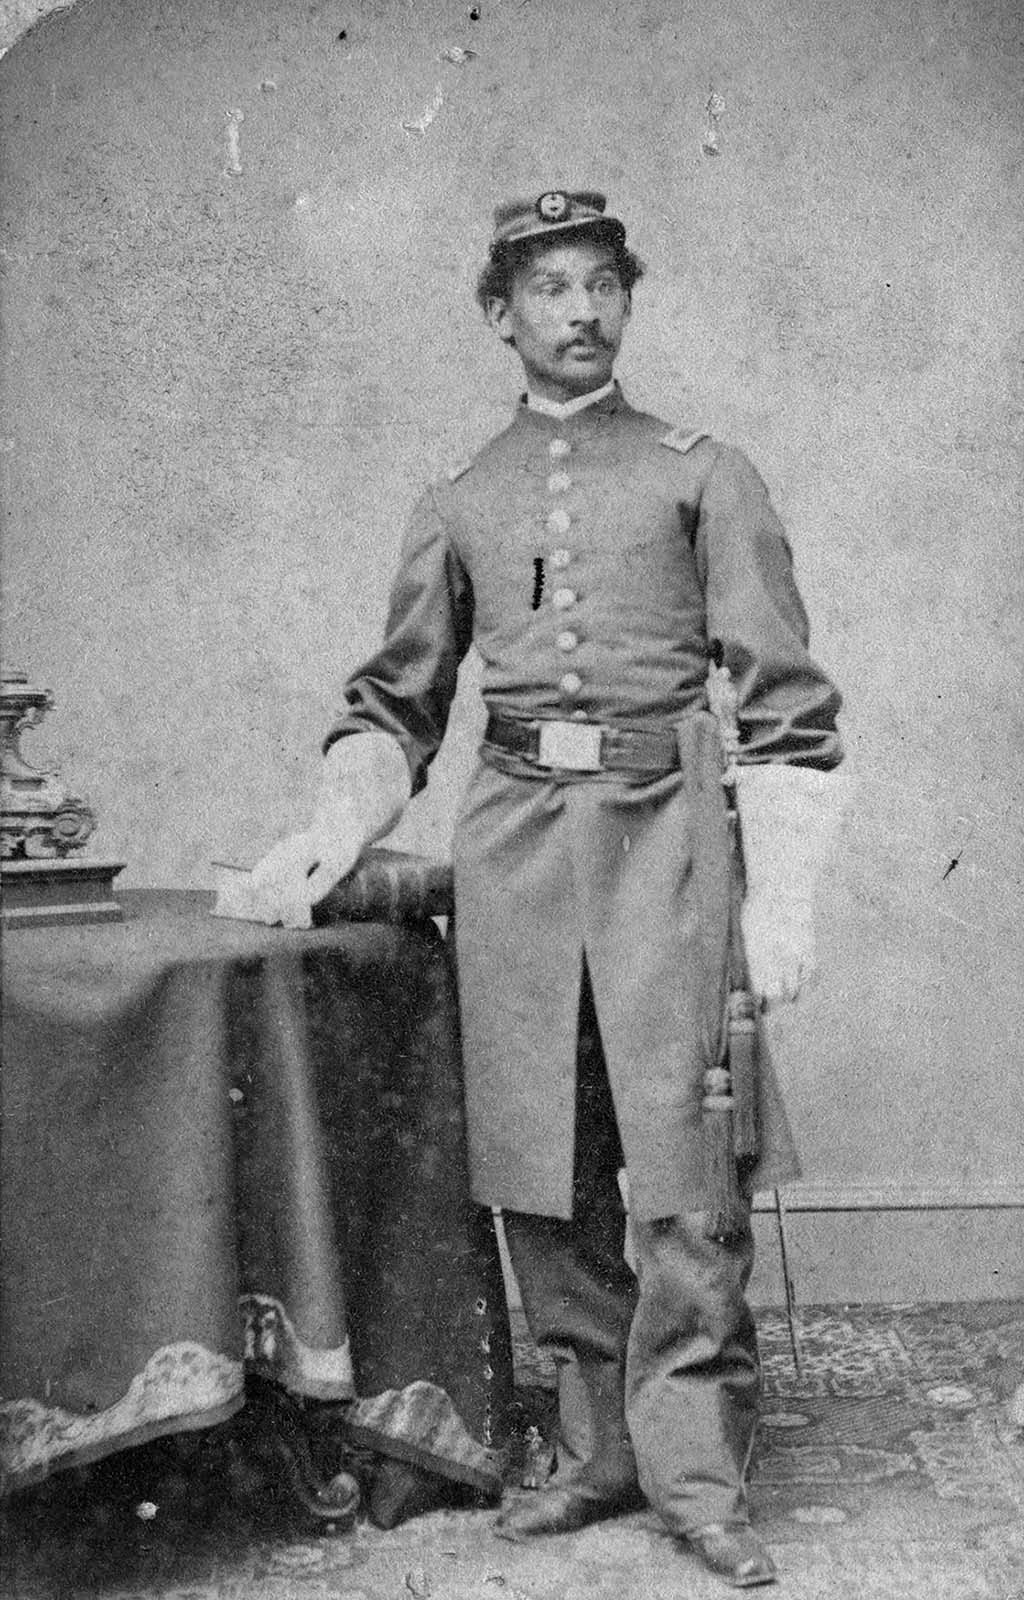 Anderson Ruffin Abbott, proud son of Toronto, who served as a doctor in the U.S. Civil War.